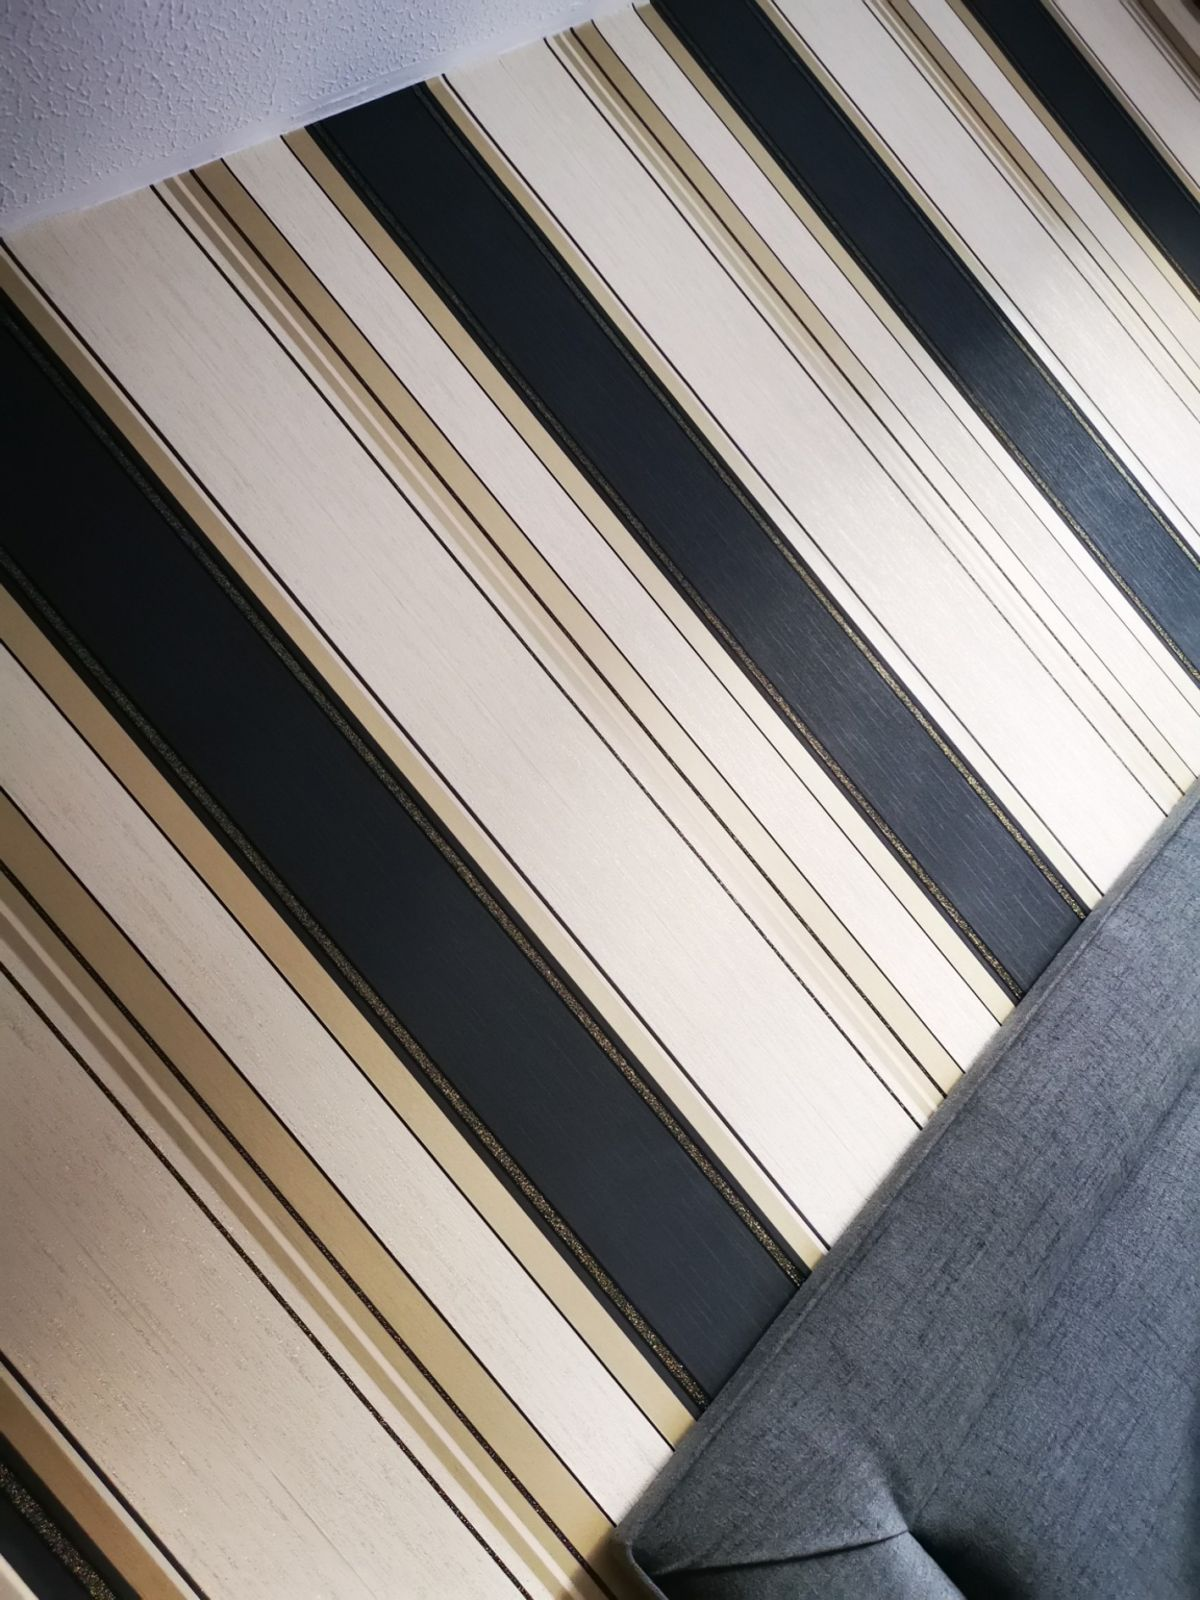 Wall Paper Rolls - Cream Gold And Black , HD Wallpaper & Backgrounds